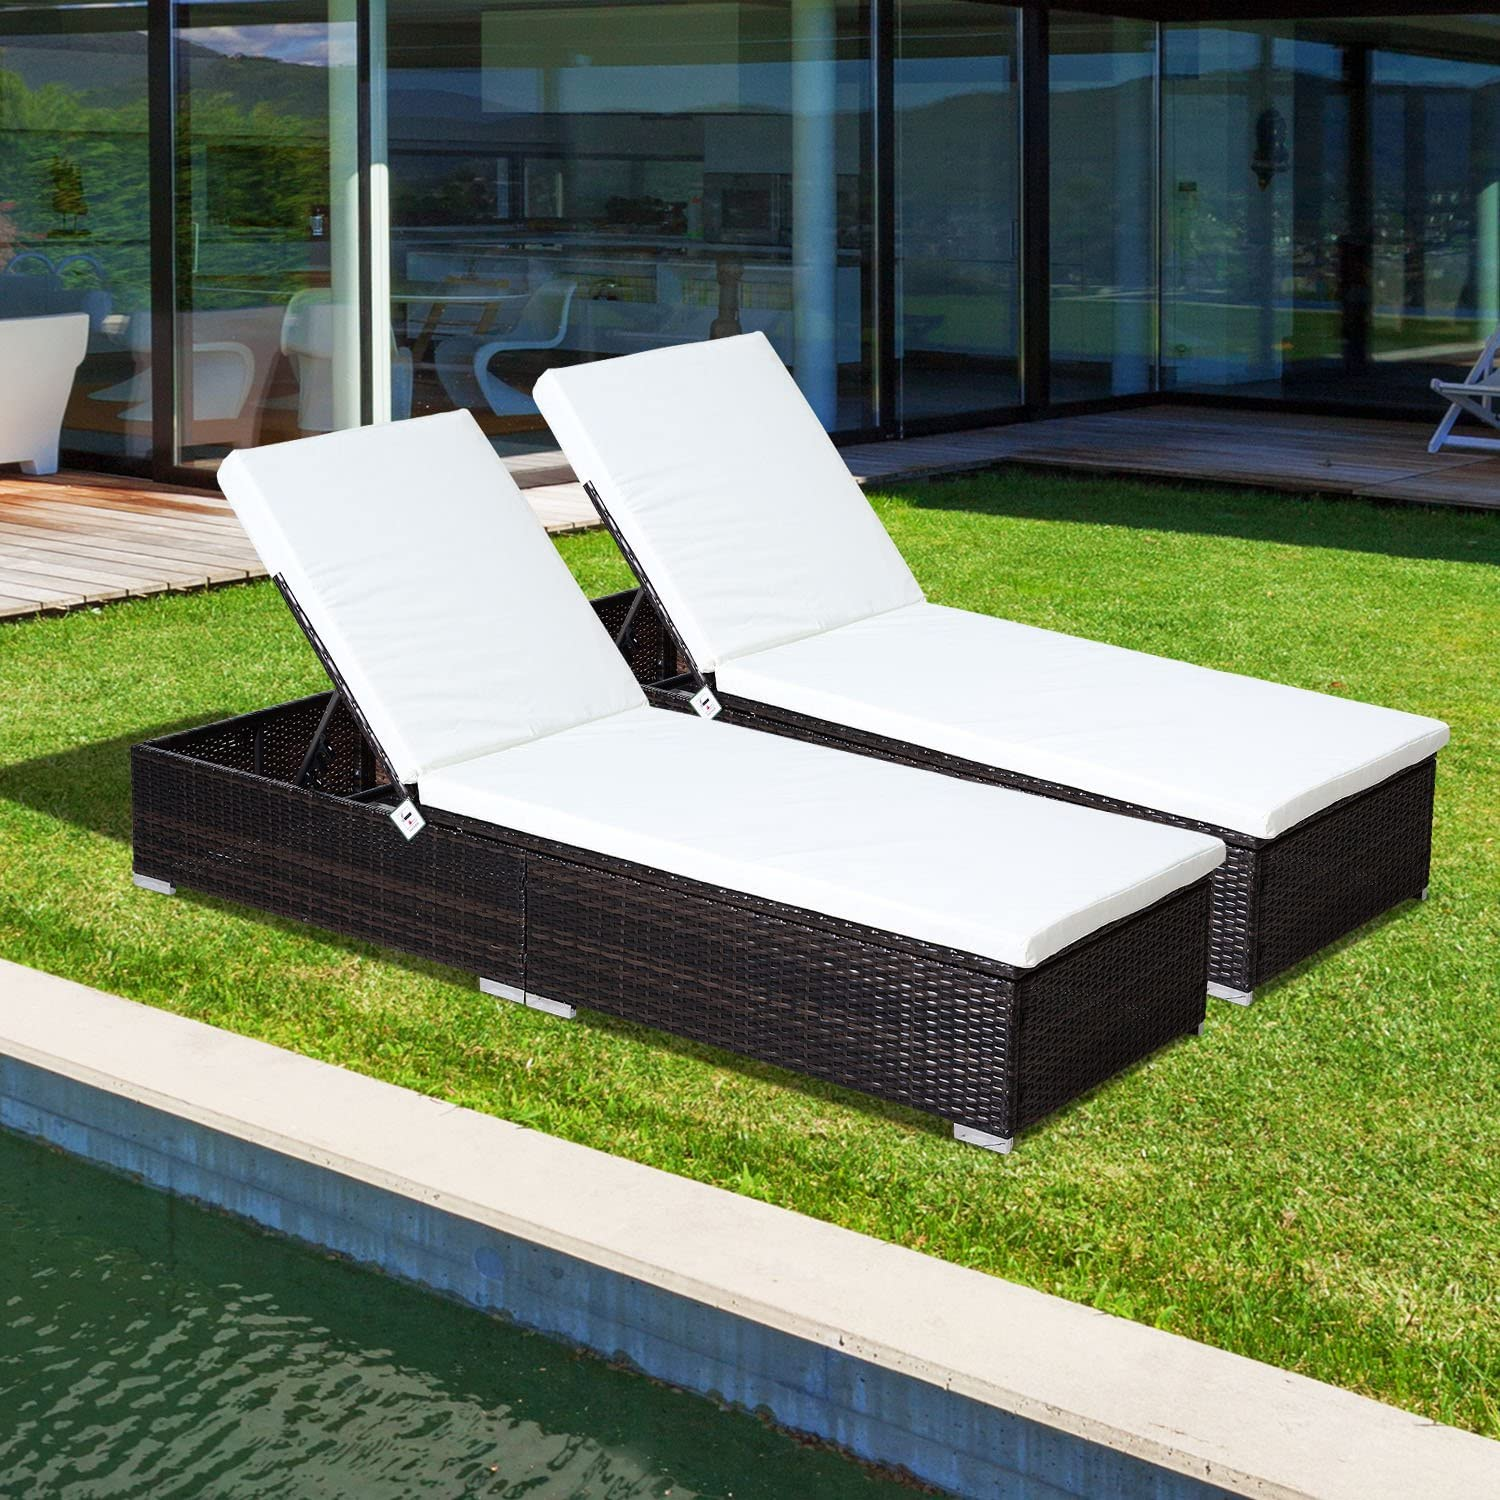 Rattan Garden Furniture 11 pcs Set Sun Loungers Recliners Bed